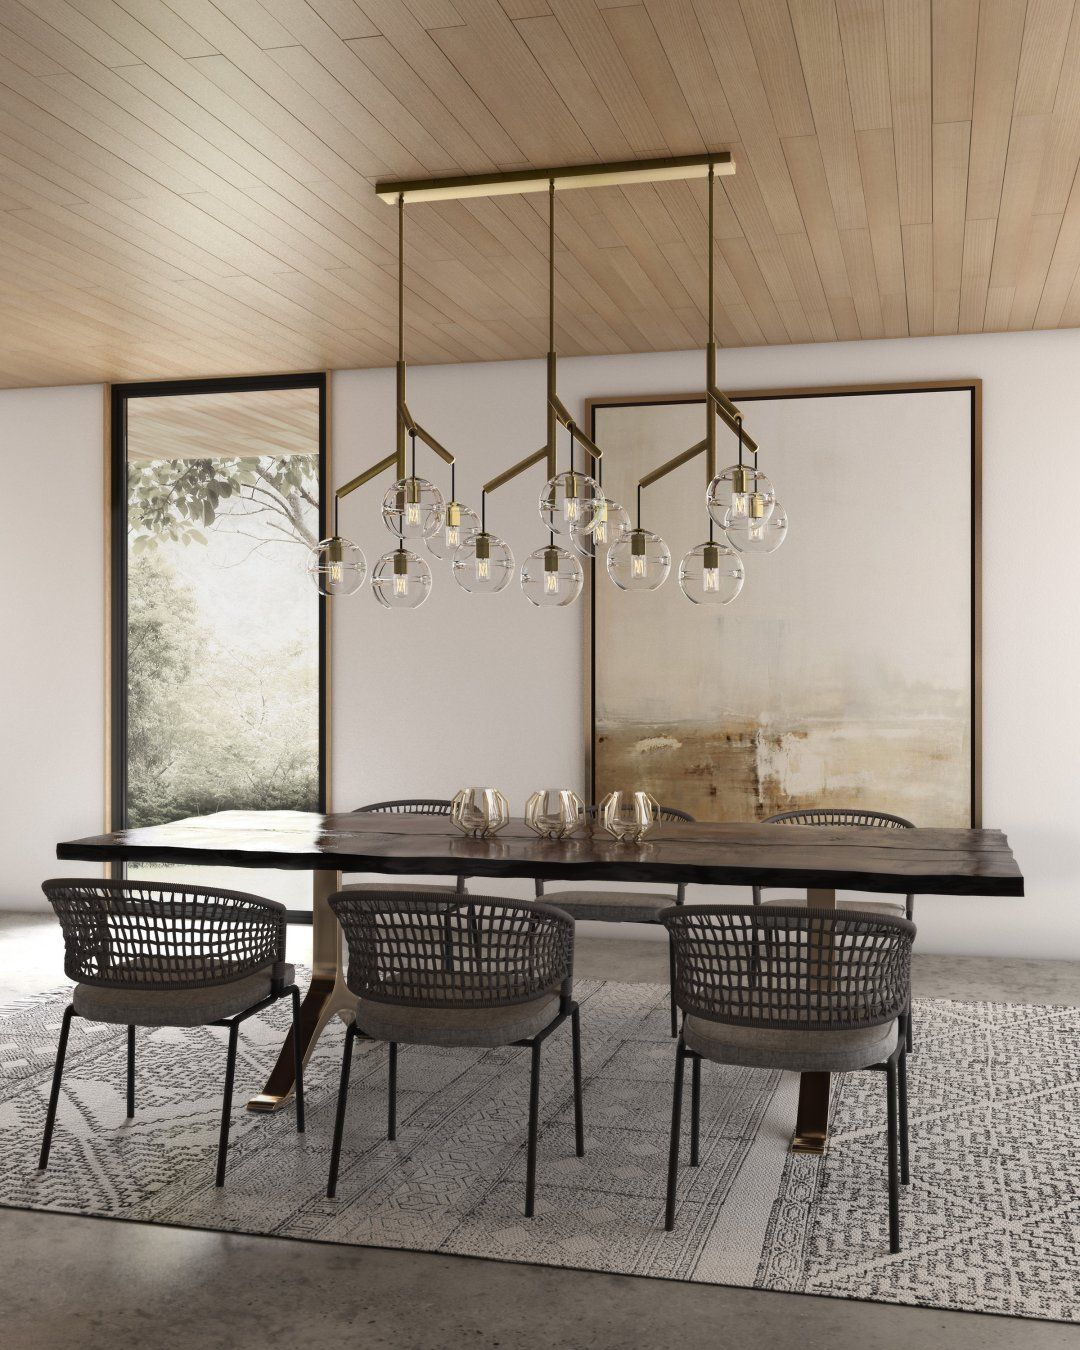 While Traditional Chandeliers Still Have Their Place, Modern Chandeliers  Are Being Re Imagined. Say Hello To The Rise Of The Deconstructed Chandelier .